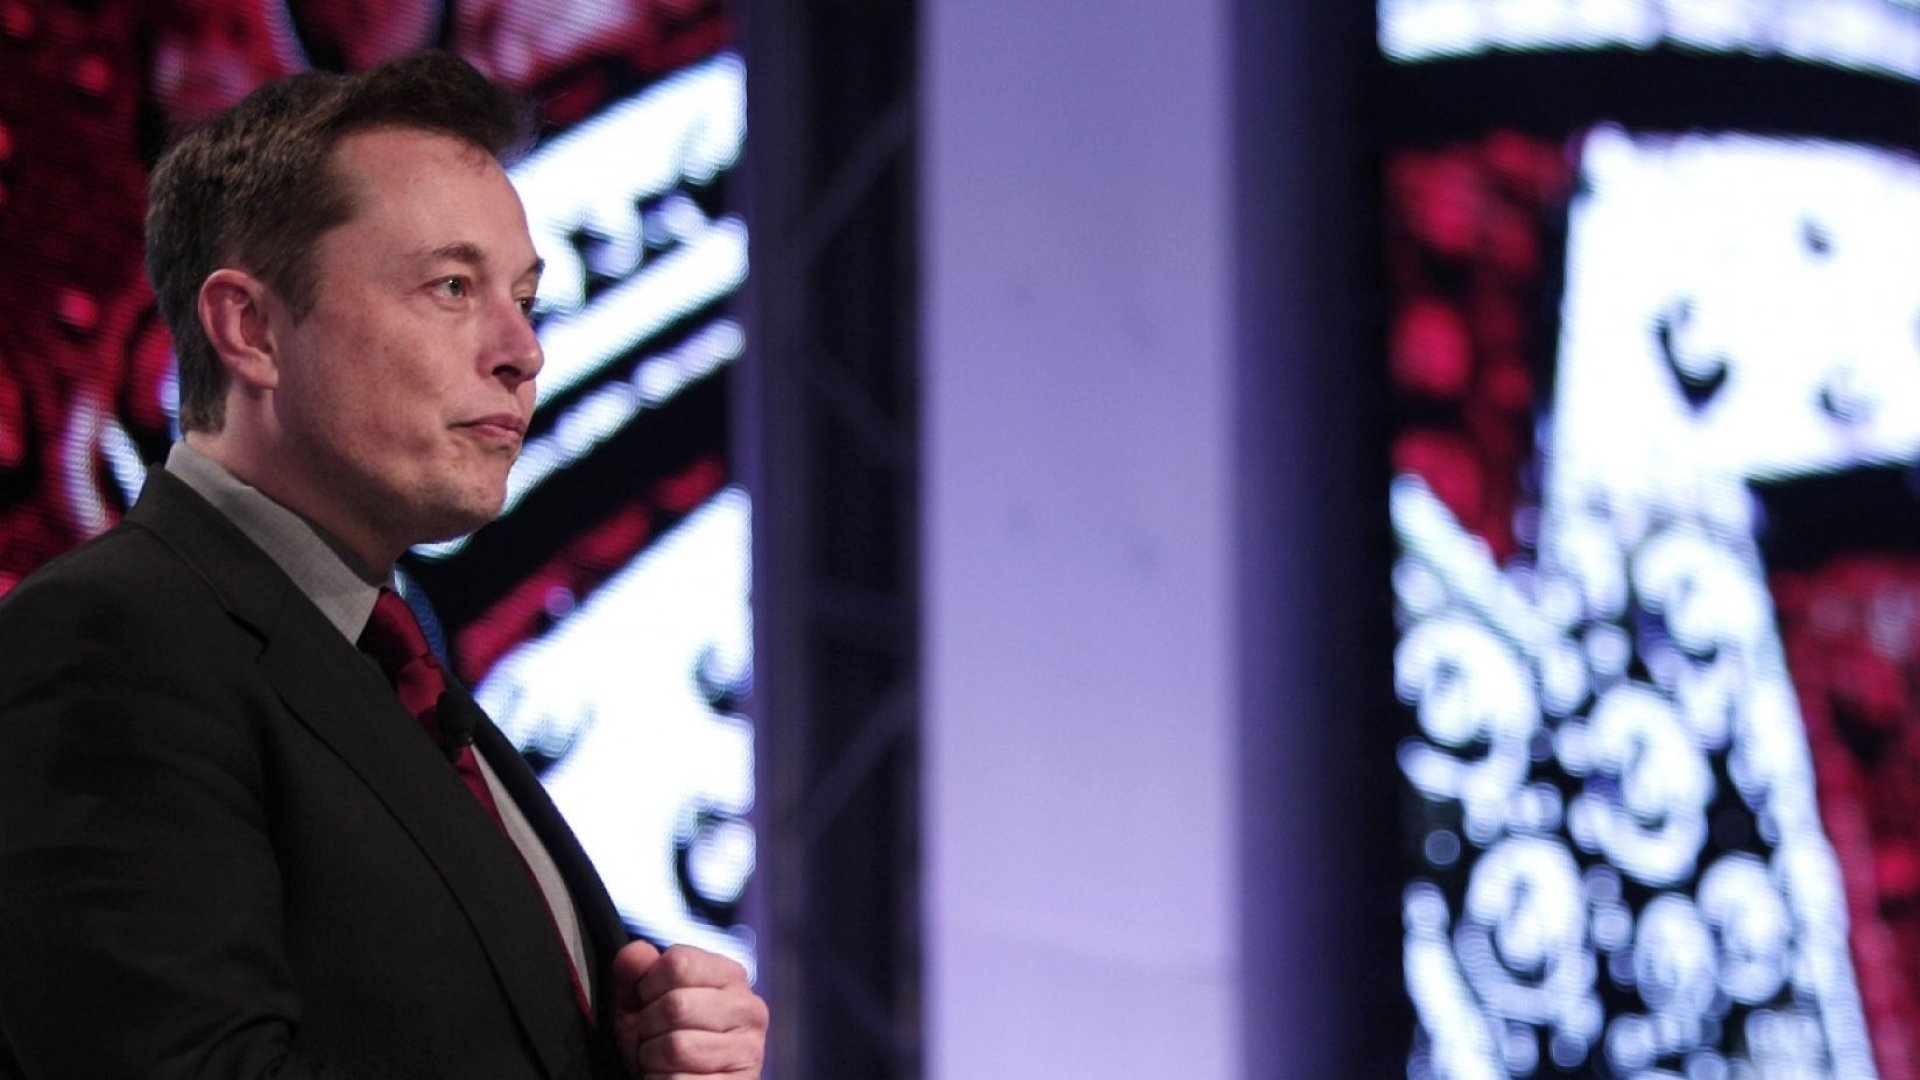 Elon Musk is hugely successful, but he may be more aware of failure than people think.